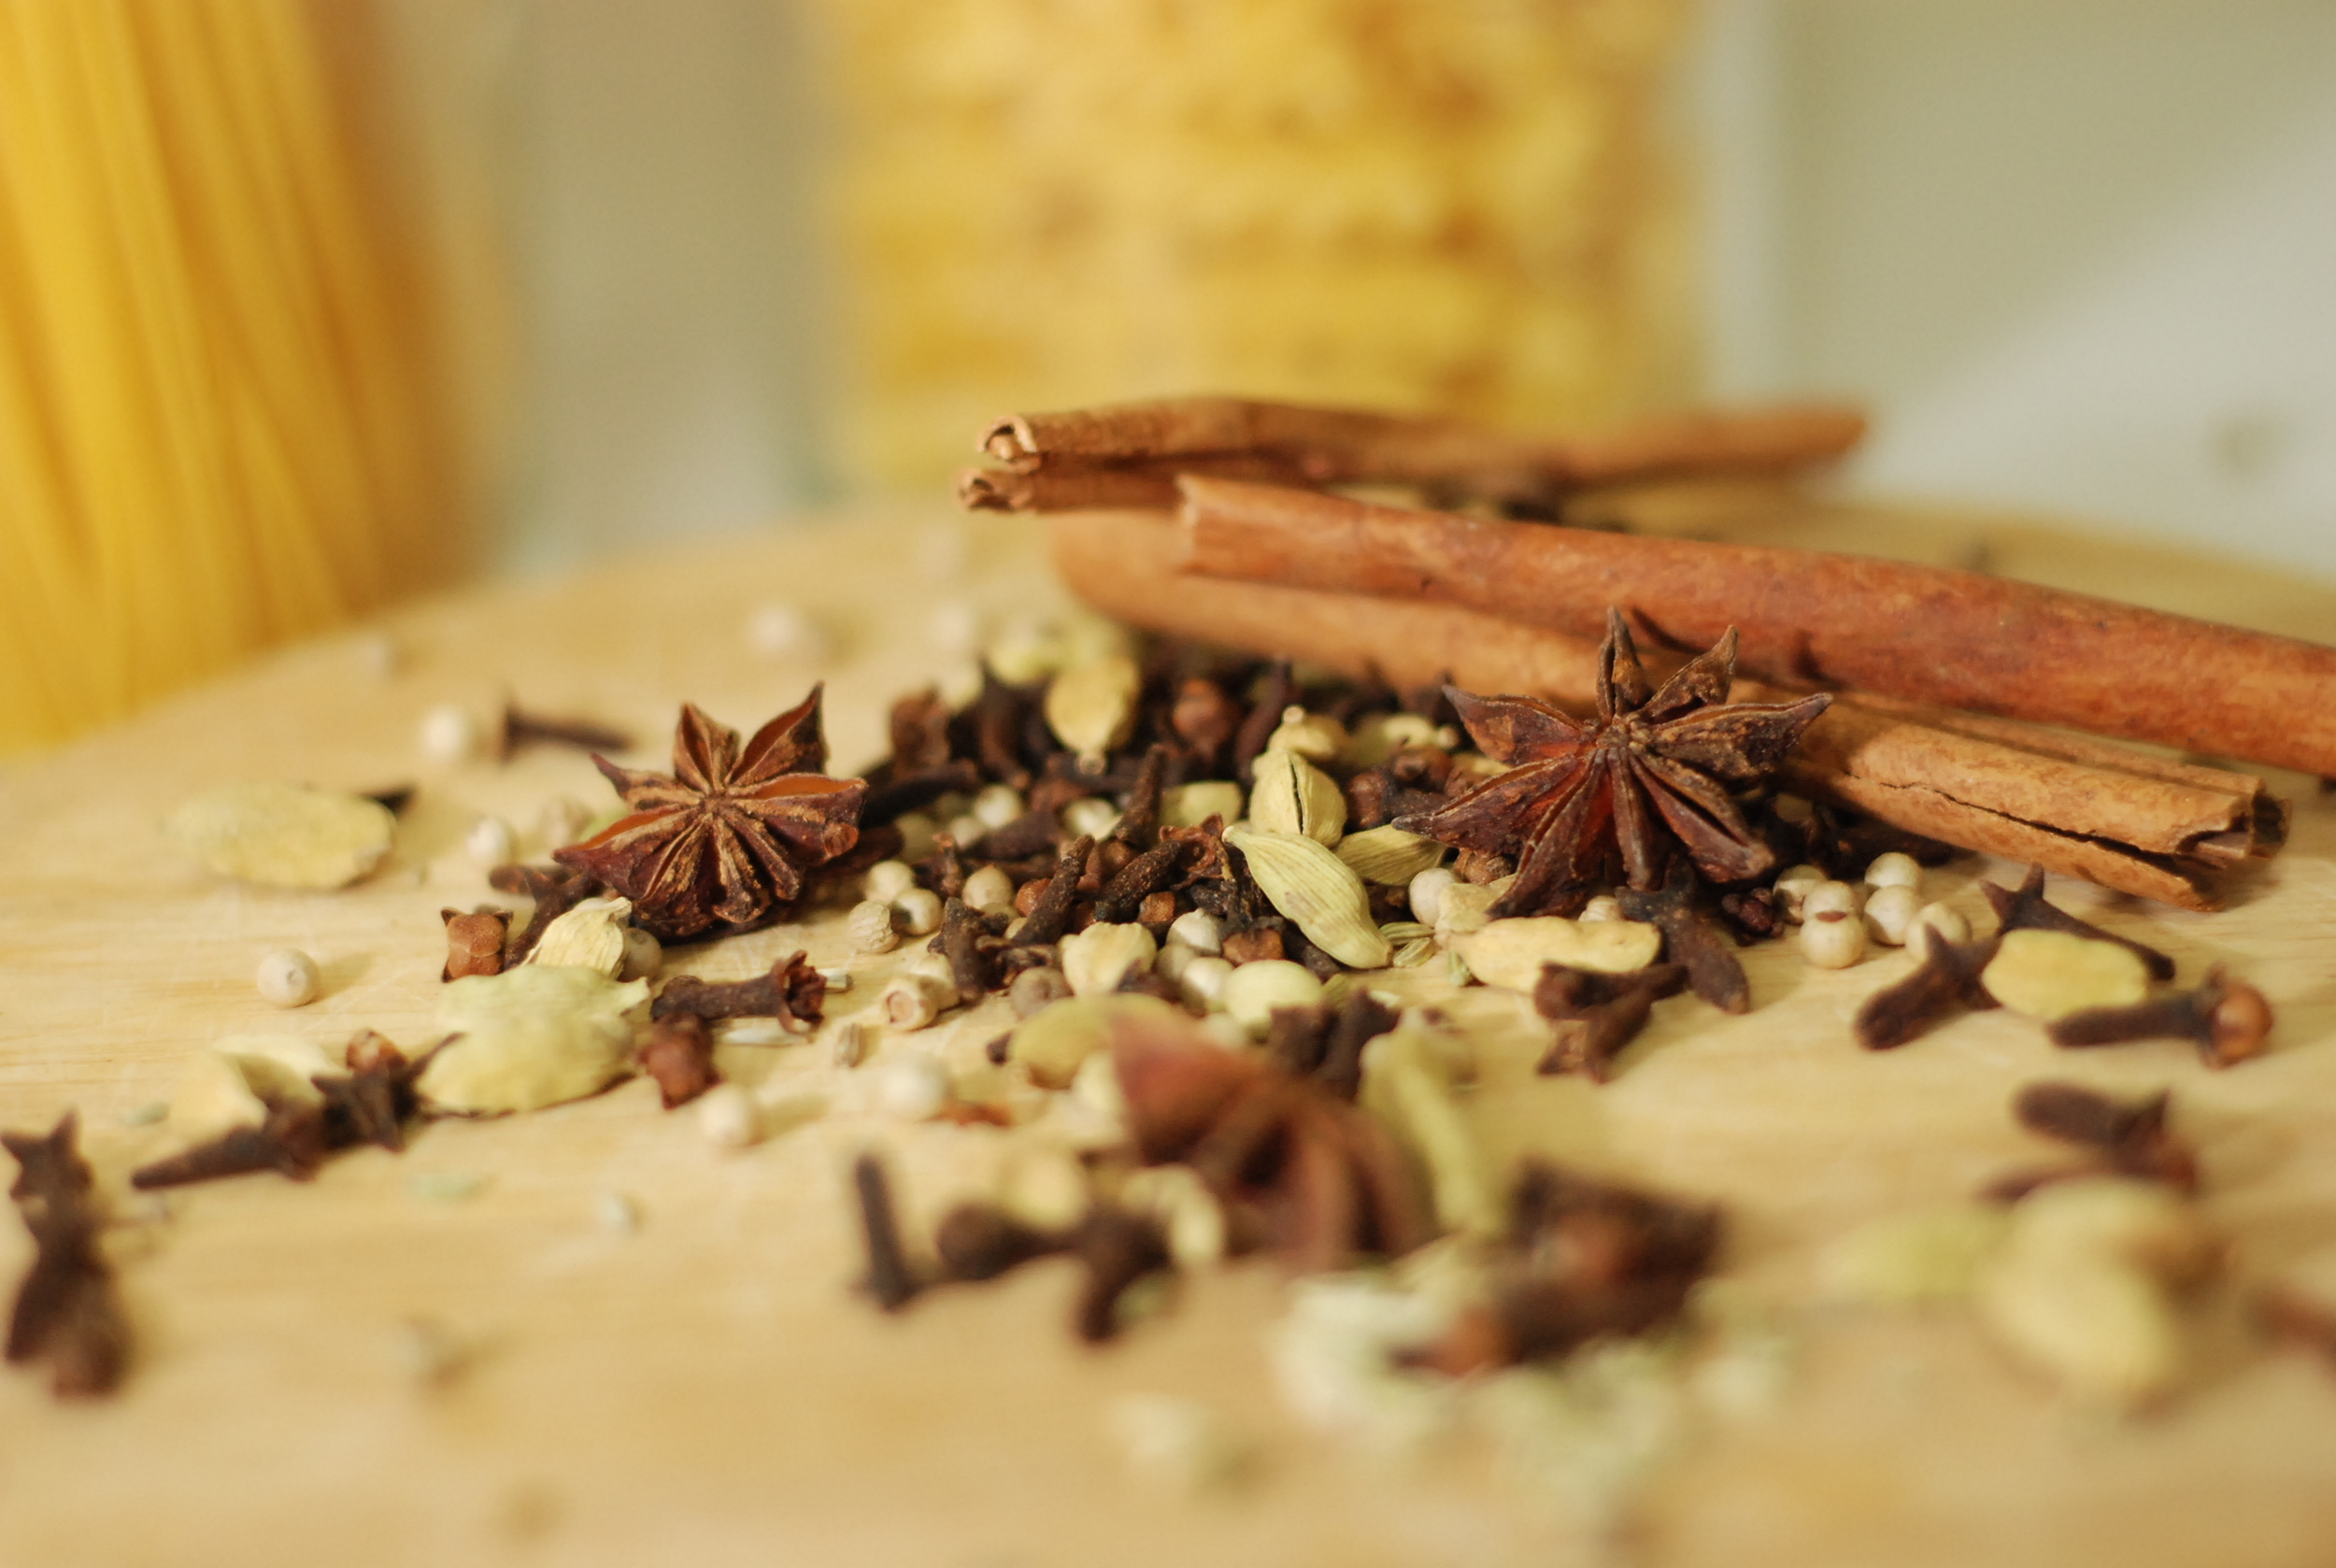 Star anise, cinnamon, cloves and cardamom are pictured above